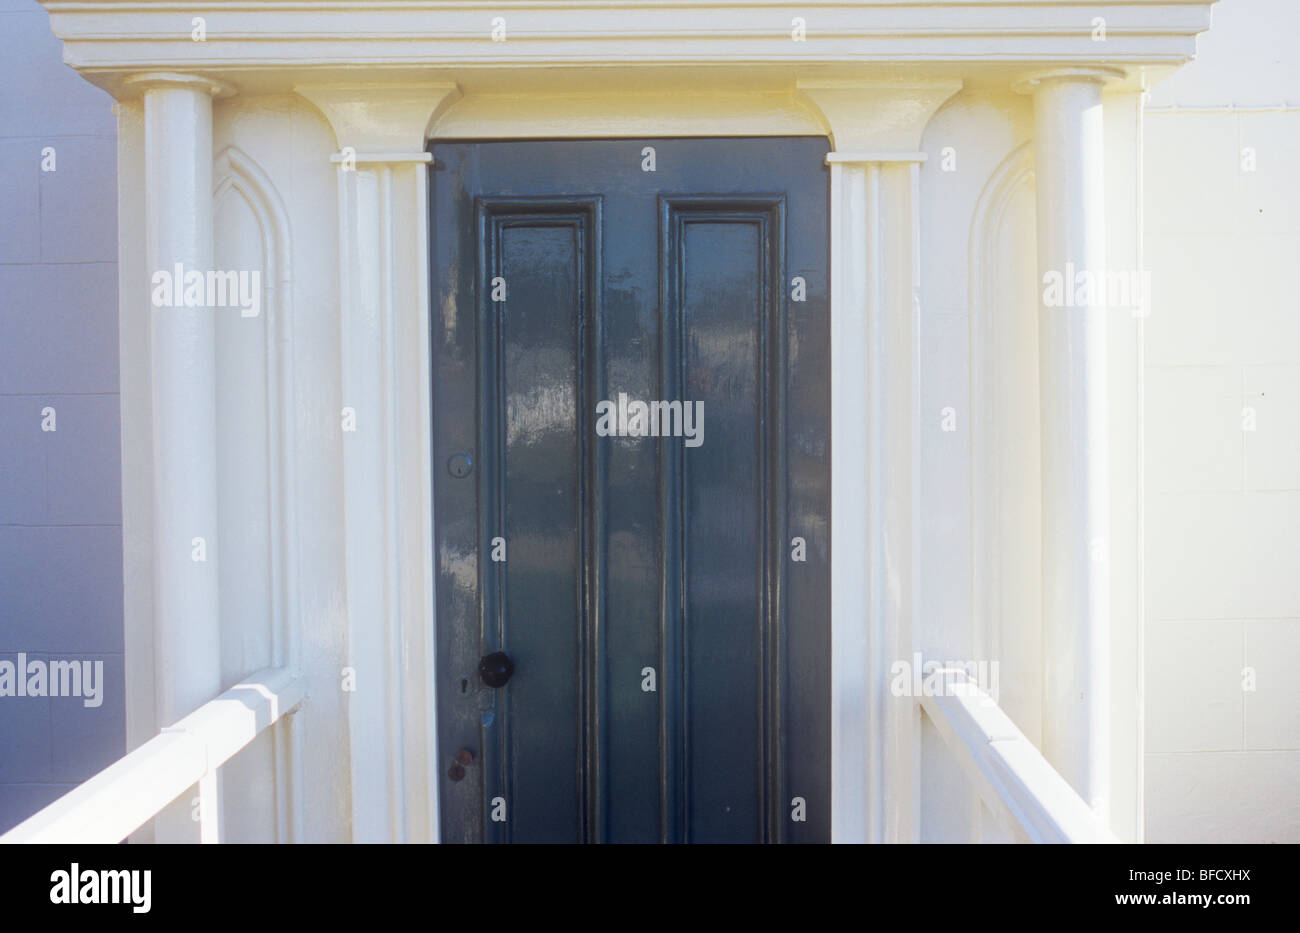 Stock Photo - Stylish wooden front door painted dark grey with white painted pillars moulded half-pillars portico and handrails & Stylish wooden front door painted dark grey with white painted ... Pezcame.Com